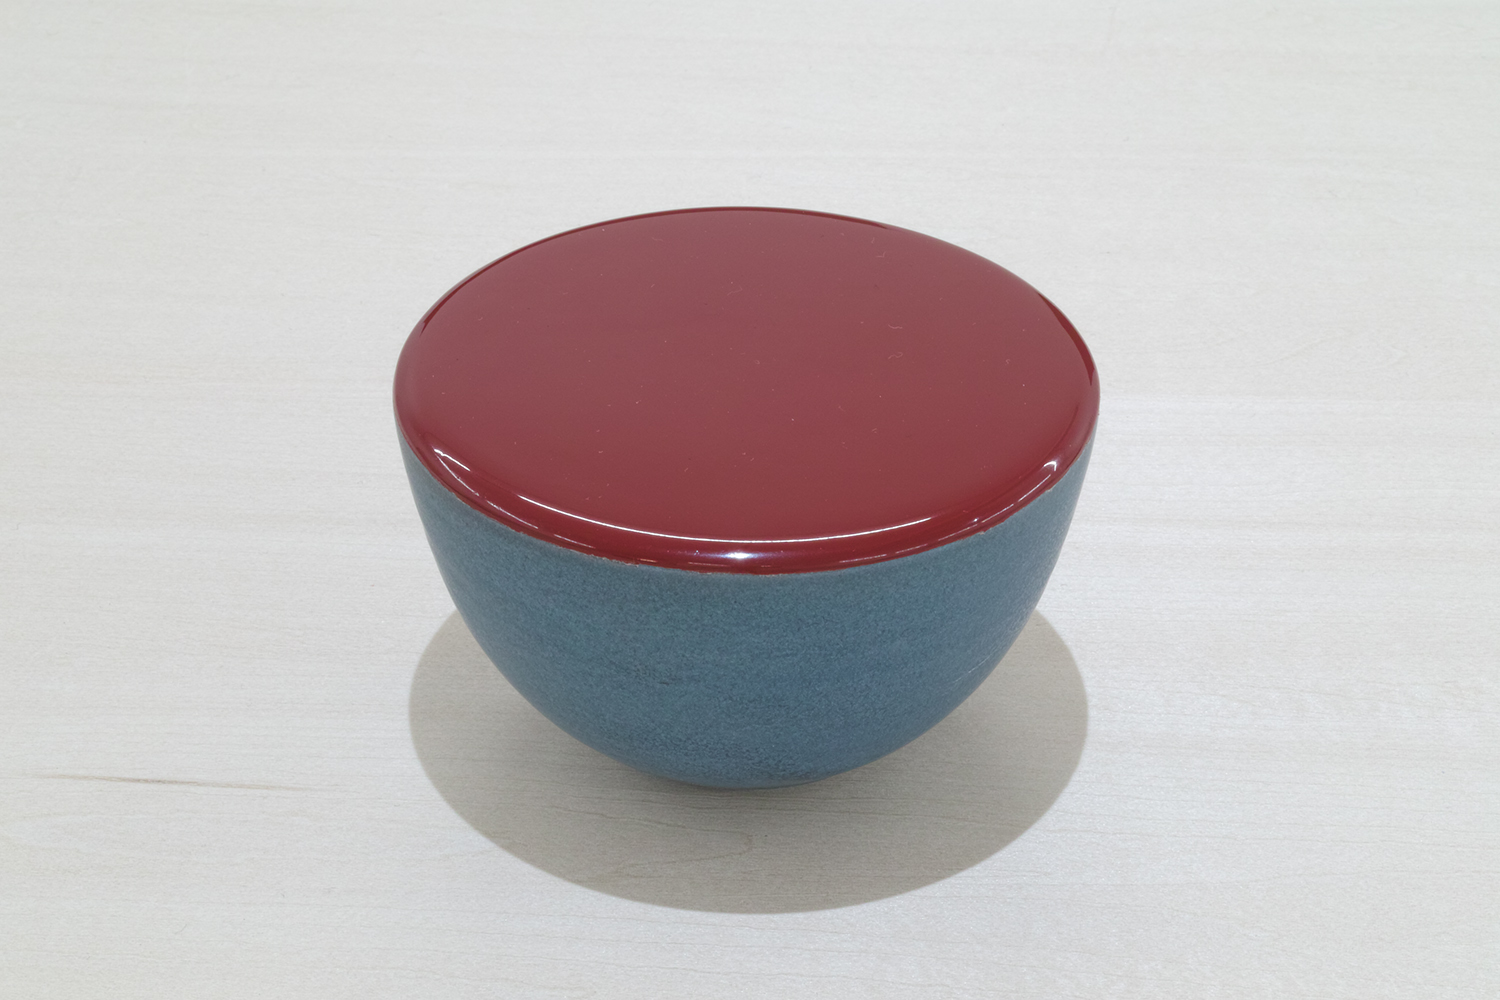 ゆるやかな平面・R/gently curved surface|Artificial lacquer with vessel by Saiko Fukuoka|112 x 112 x 70 mm|2019<br>¥50,000-100,000